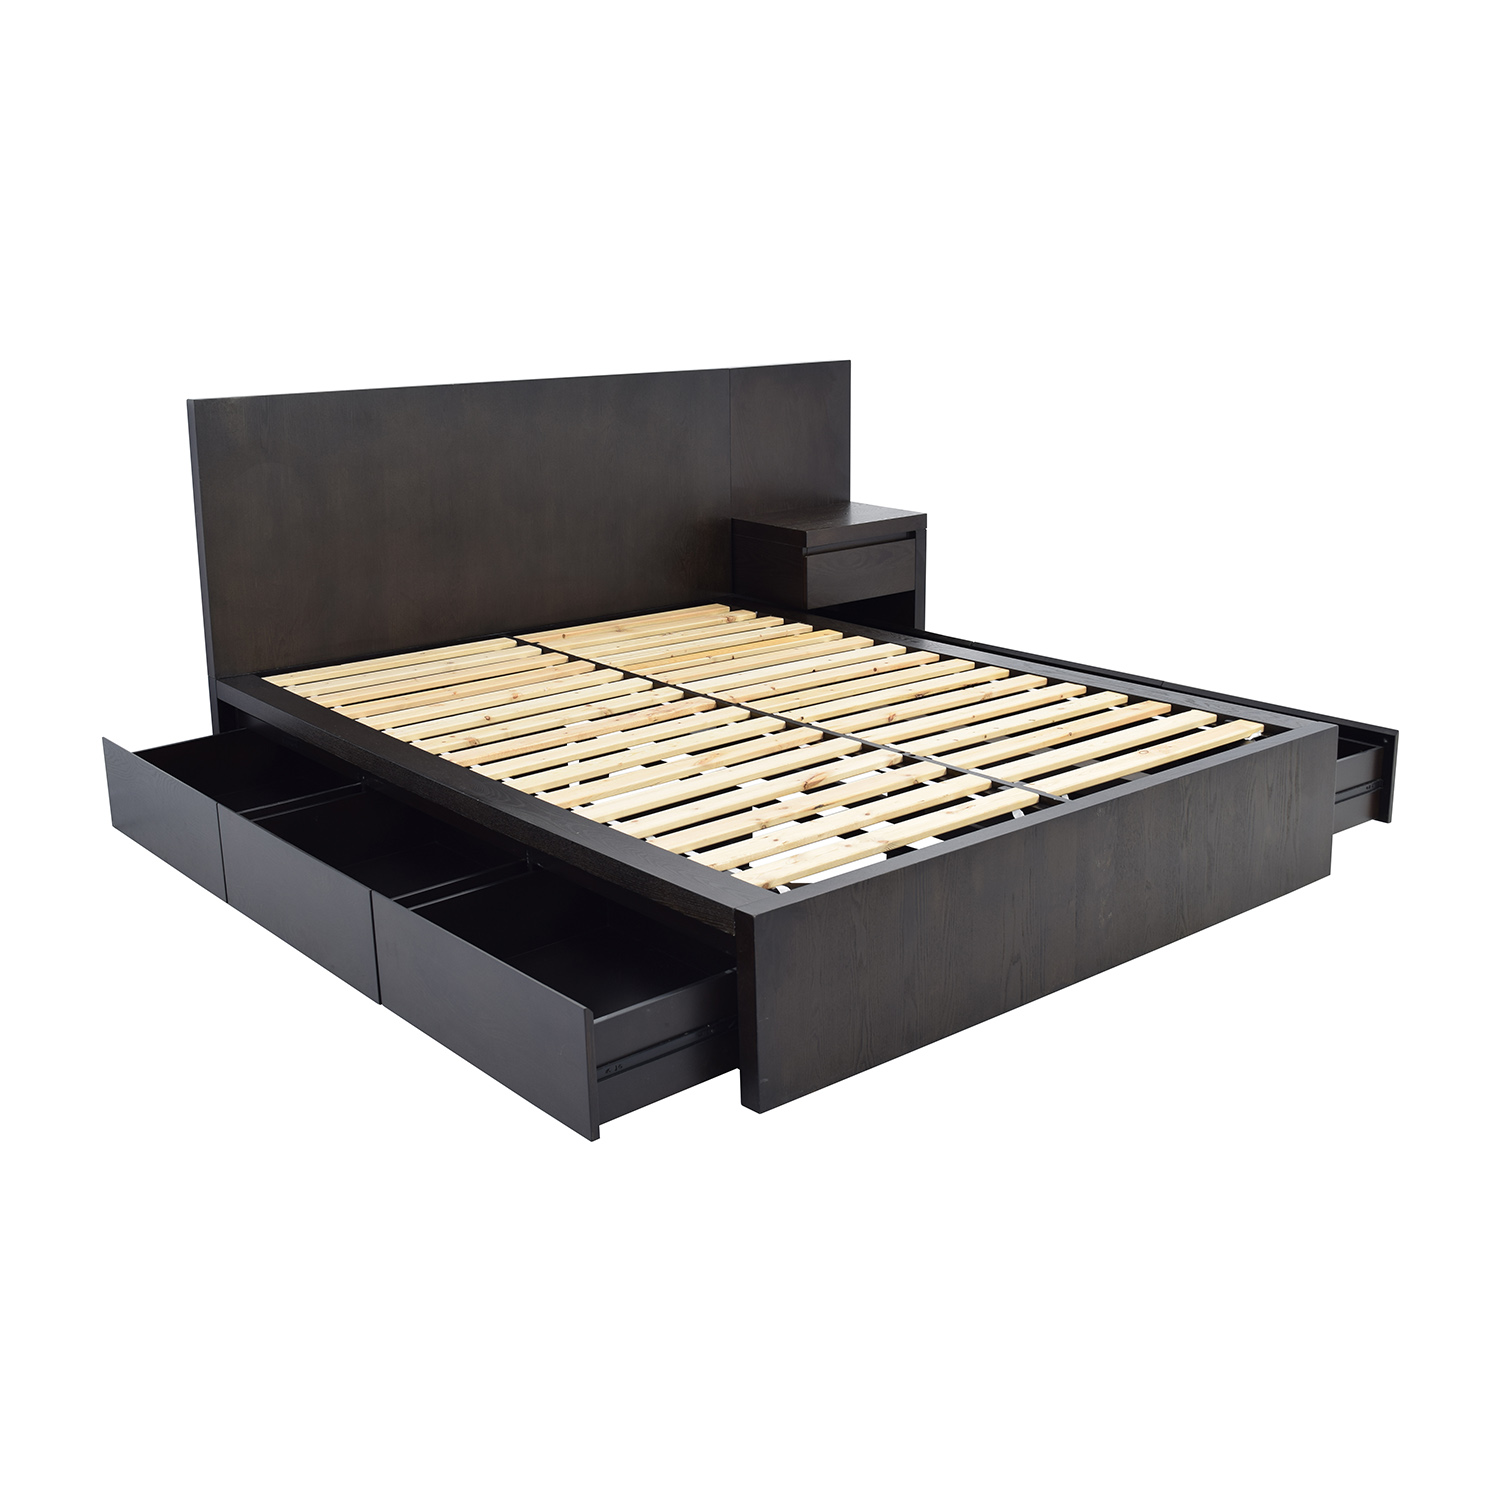 West Elm Storage Queen Platform Bed And Nightstand Frames